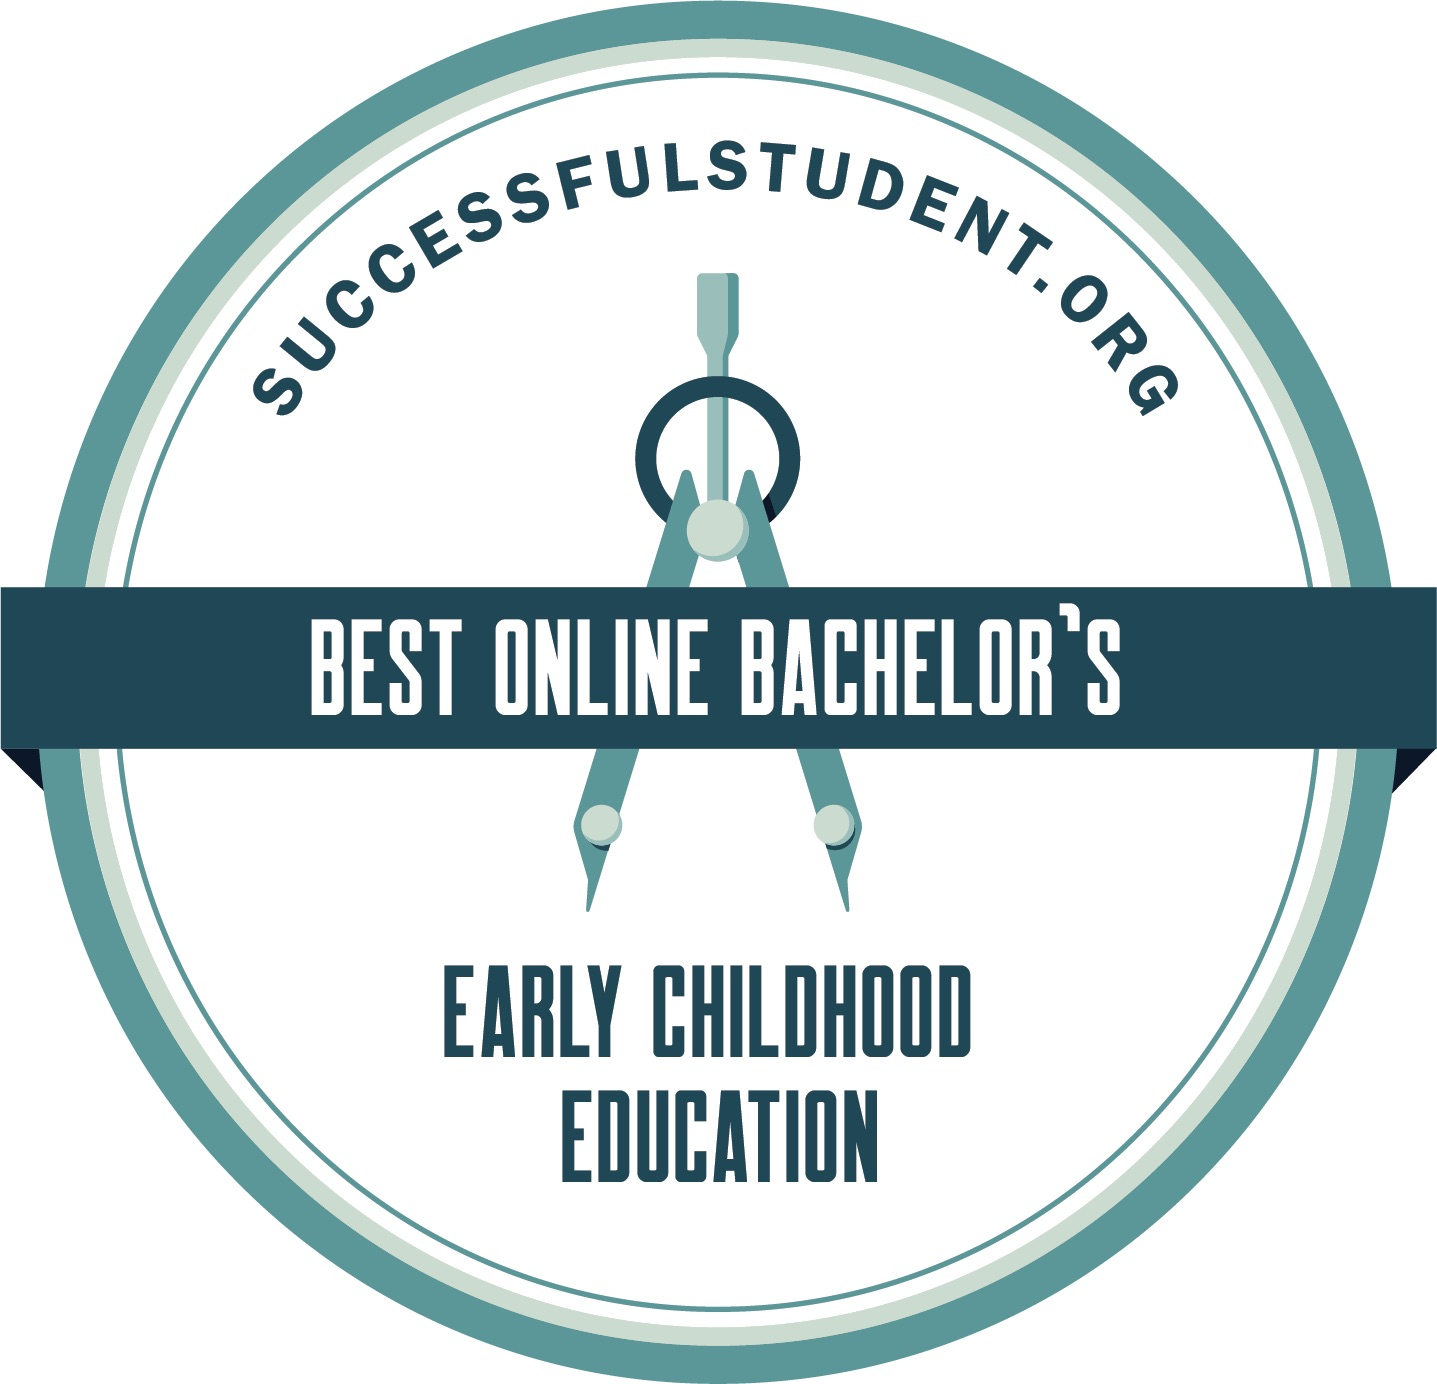 About The Fast Track Early Childhood Bachelors Degree Program